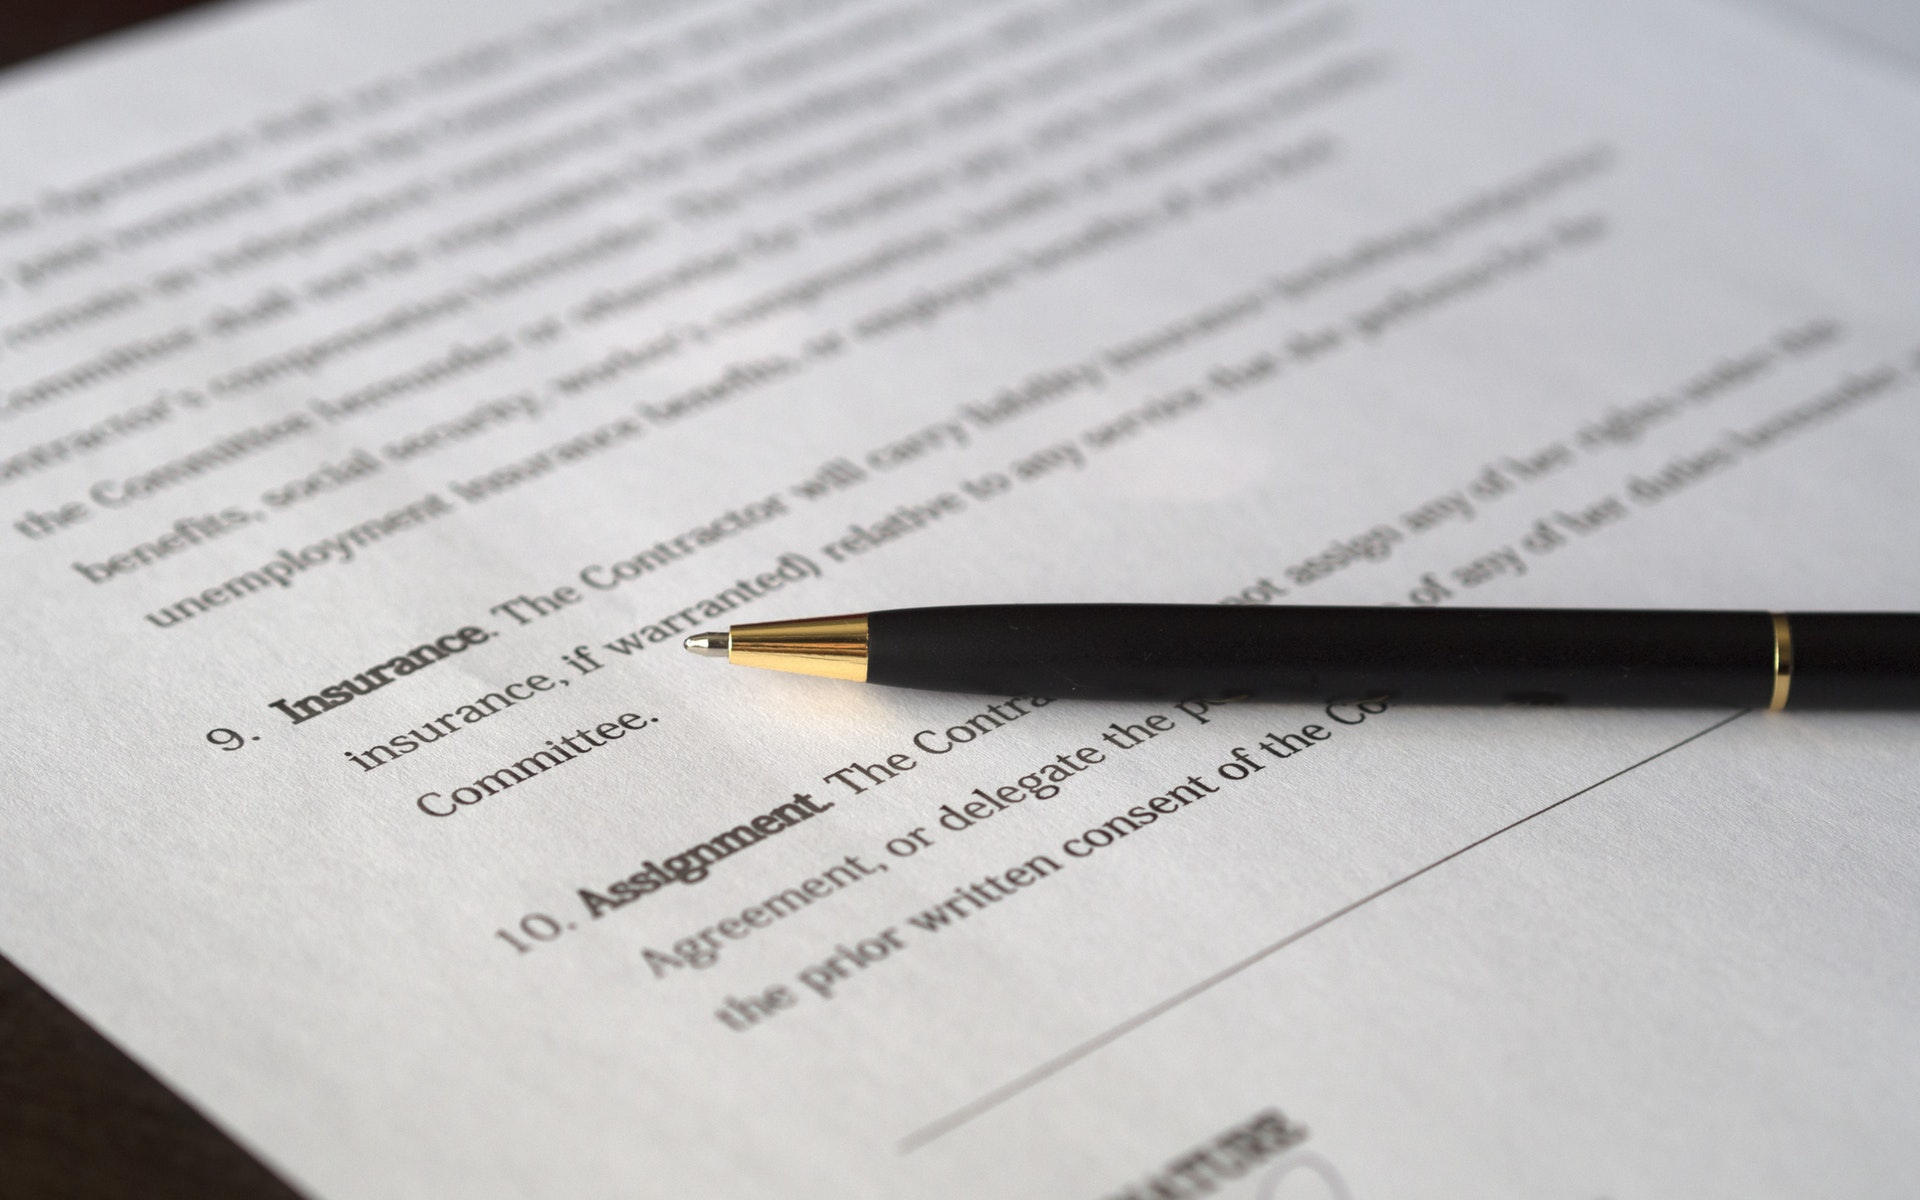 Identifying the promised goods and services in a contract is the first part of Step 2 of the five-step process in the ASC 606 revenue recognition standard.